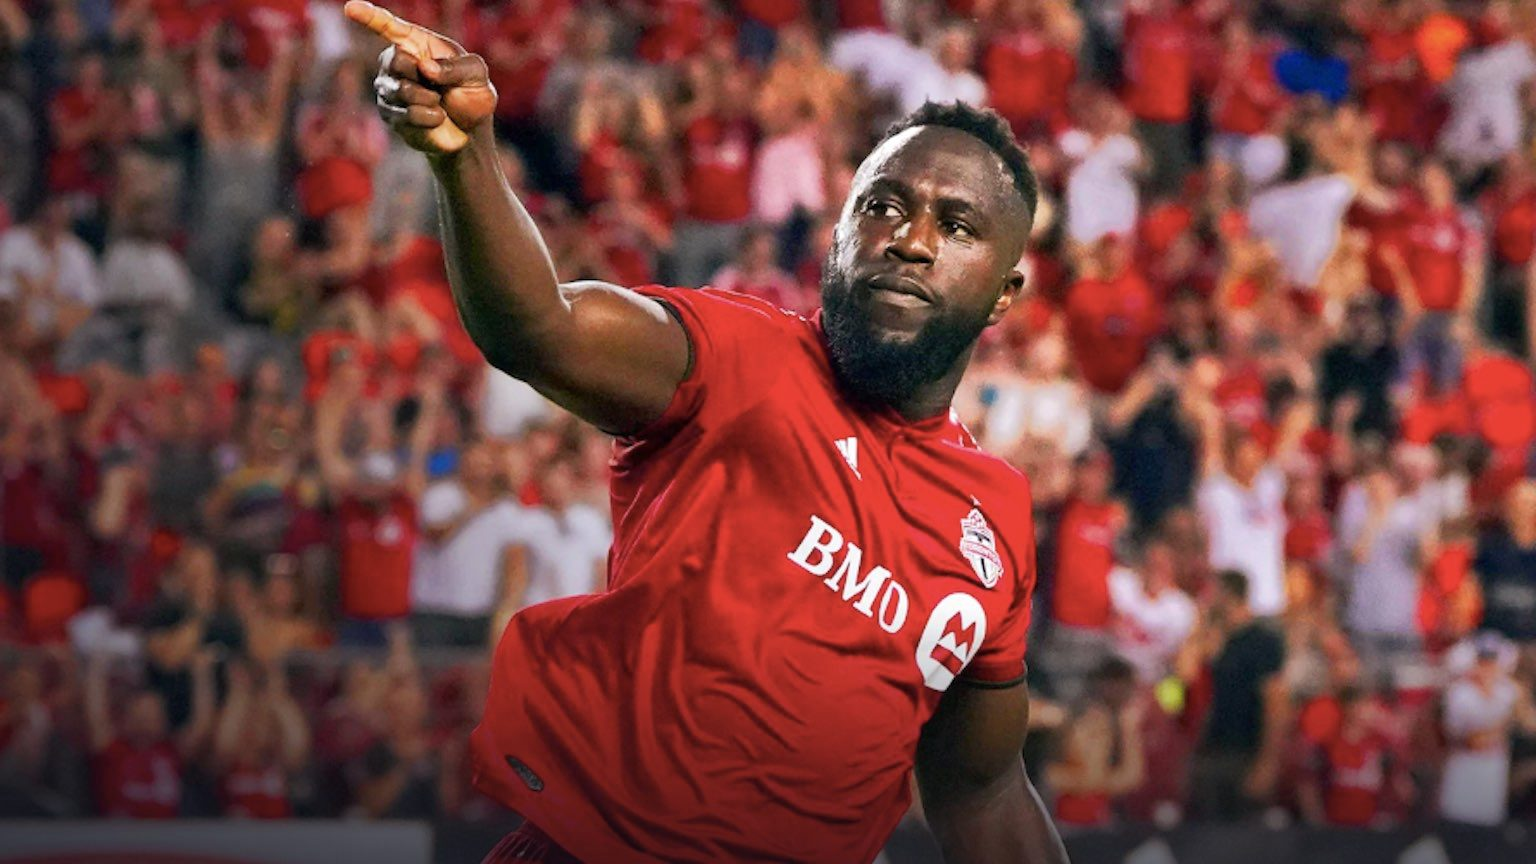 Toronto FC player Jozy Altidore pointing to crowd while running